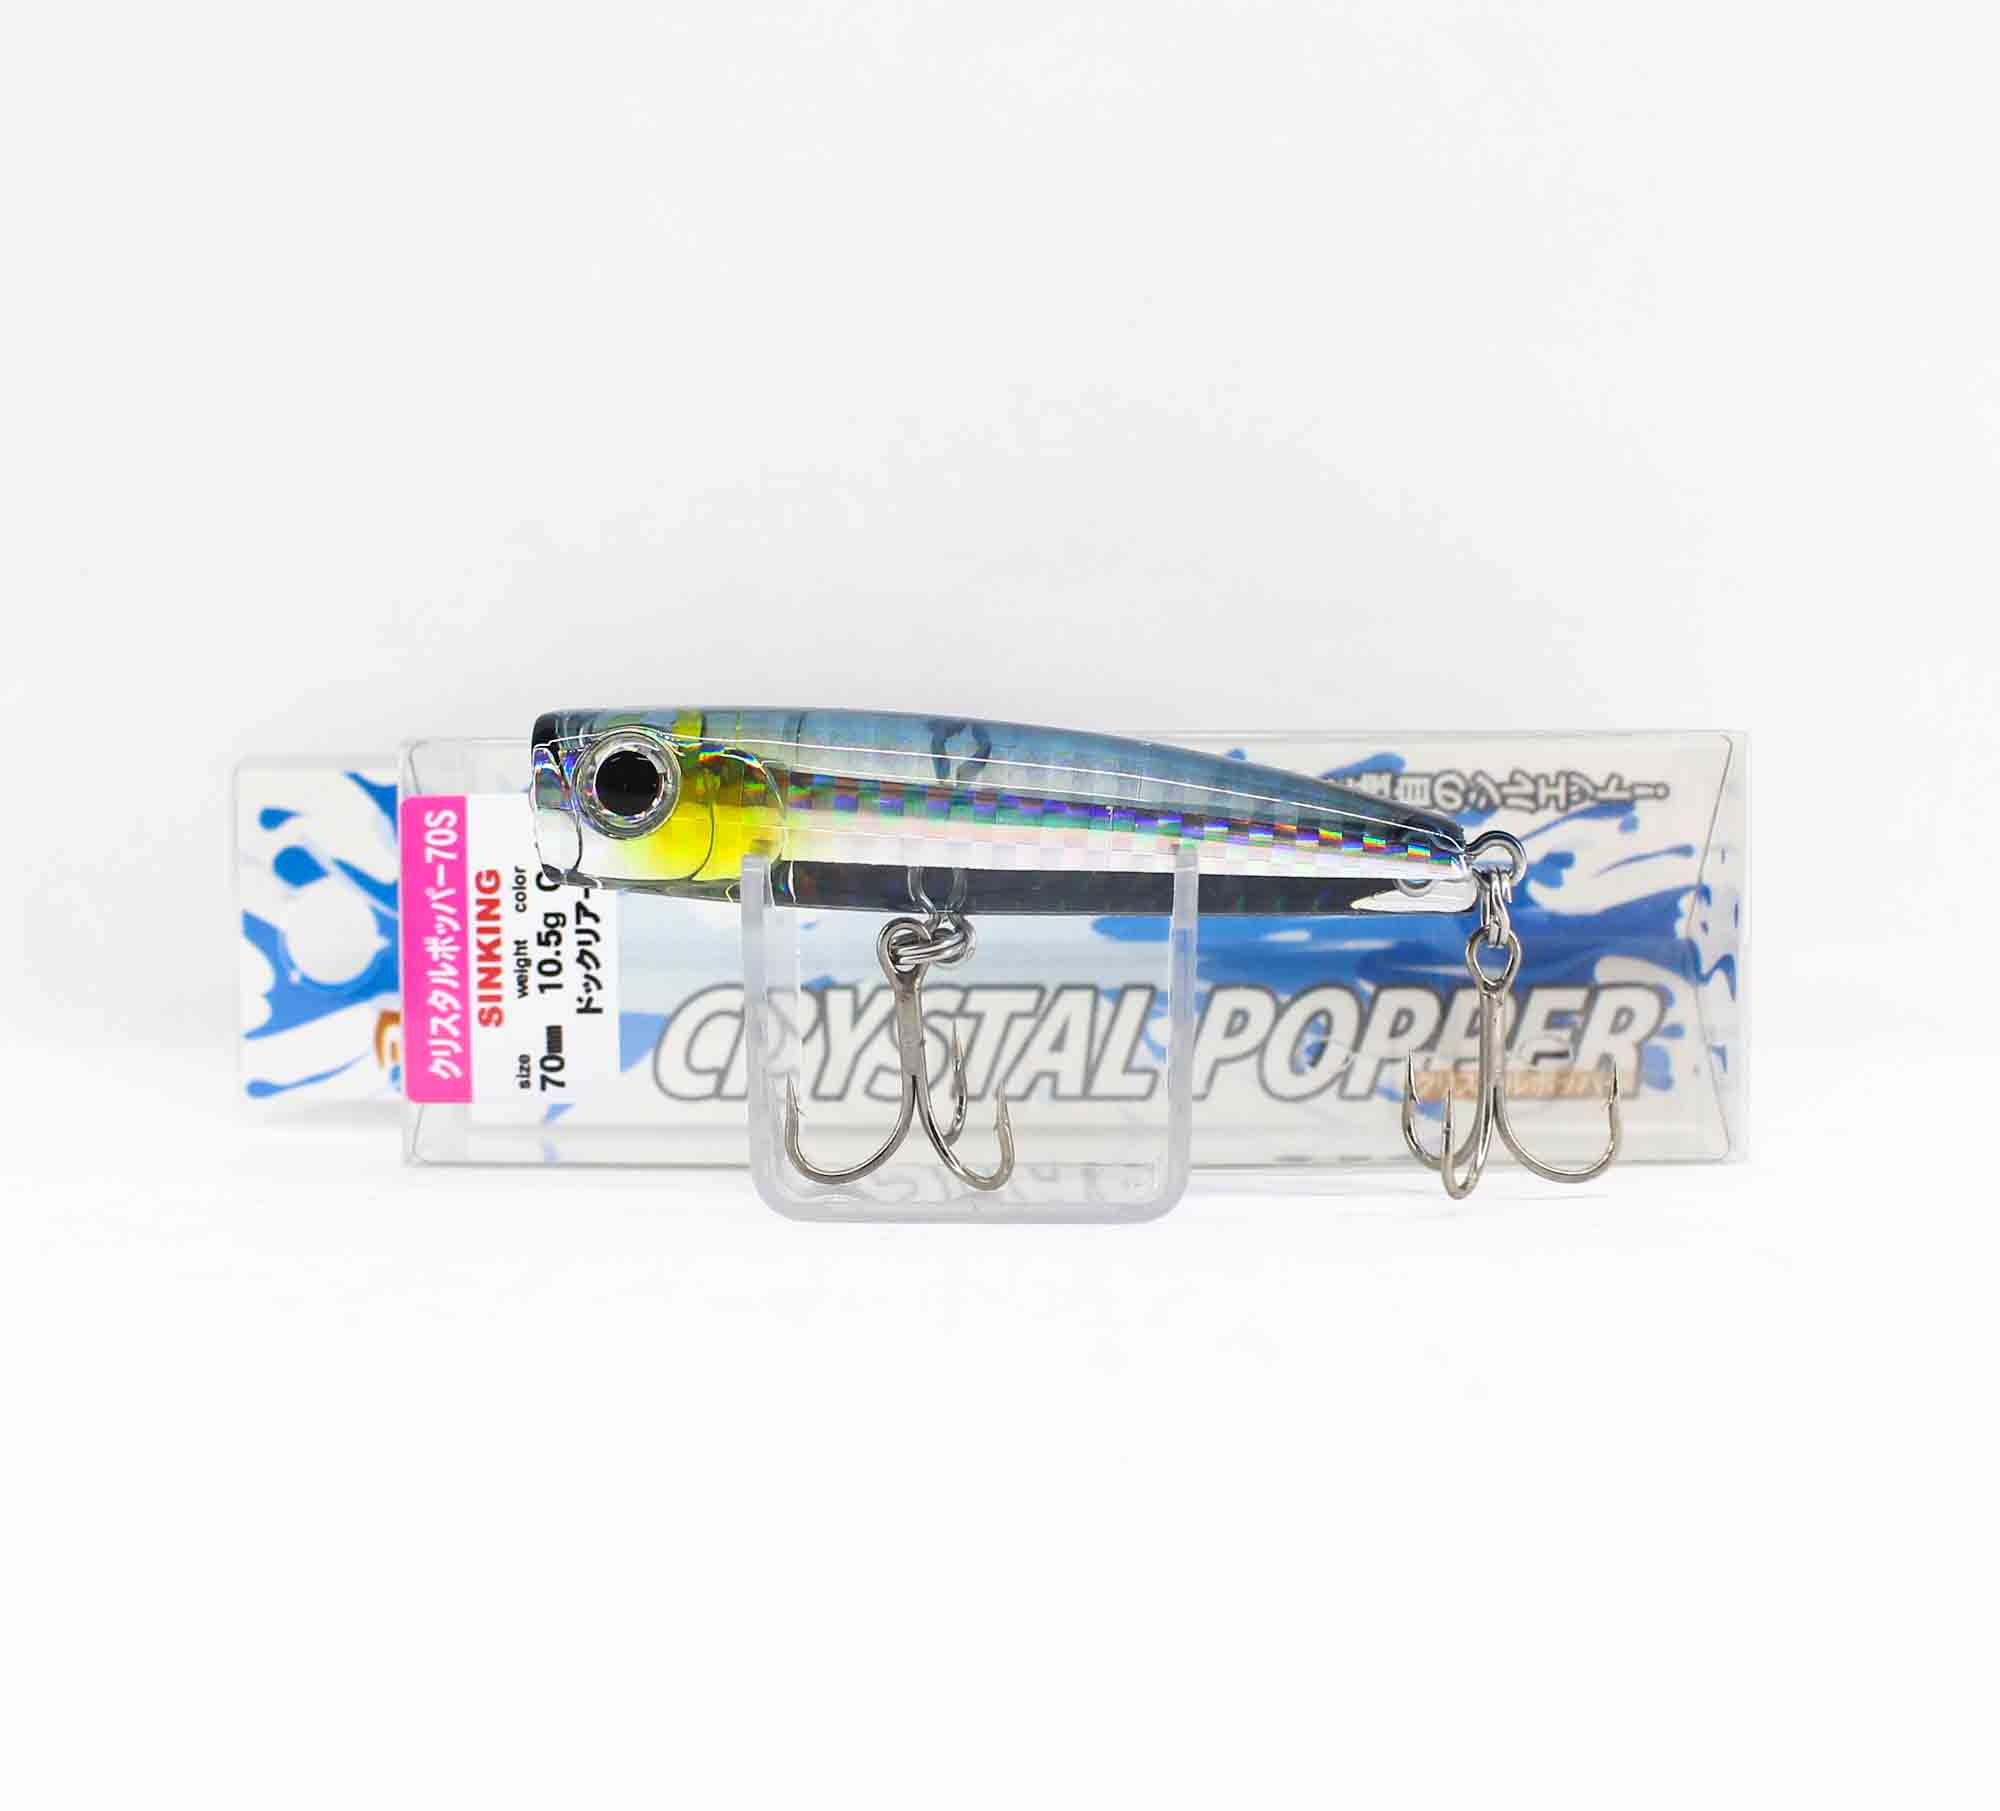 Bassday Crystal Popper 70S Sinking Lure 10.5 grams HH-189 (1028)